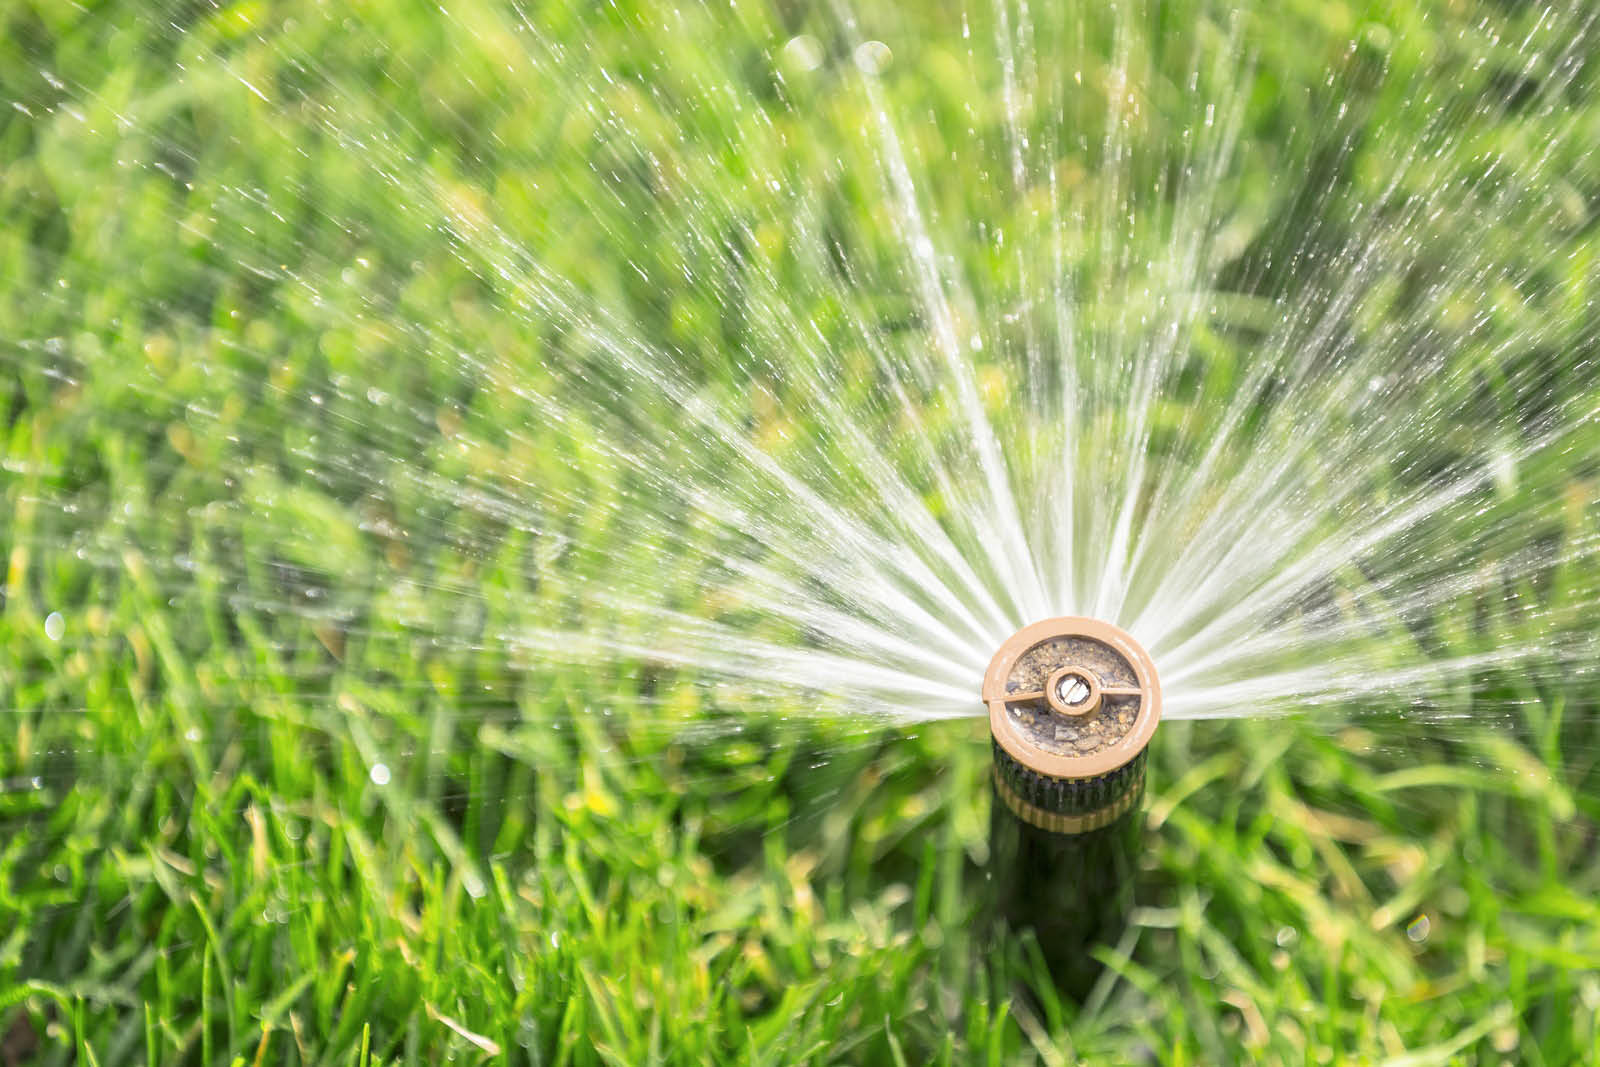 Vinny's Gardening Service in Kent, Washington provides sprinkler system service